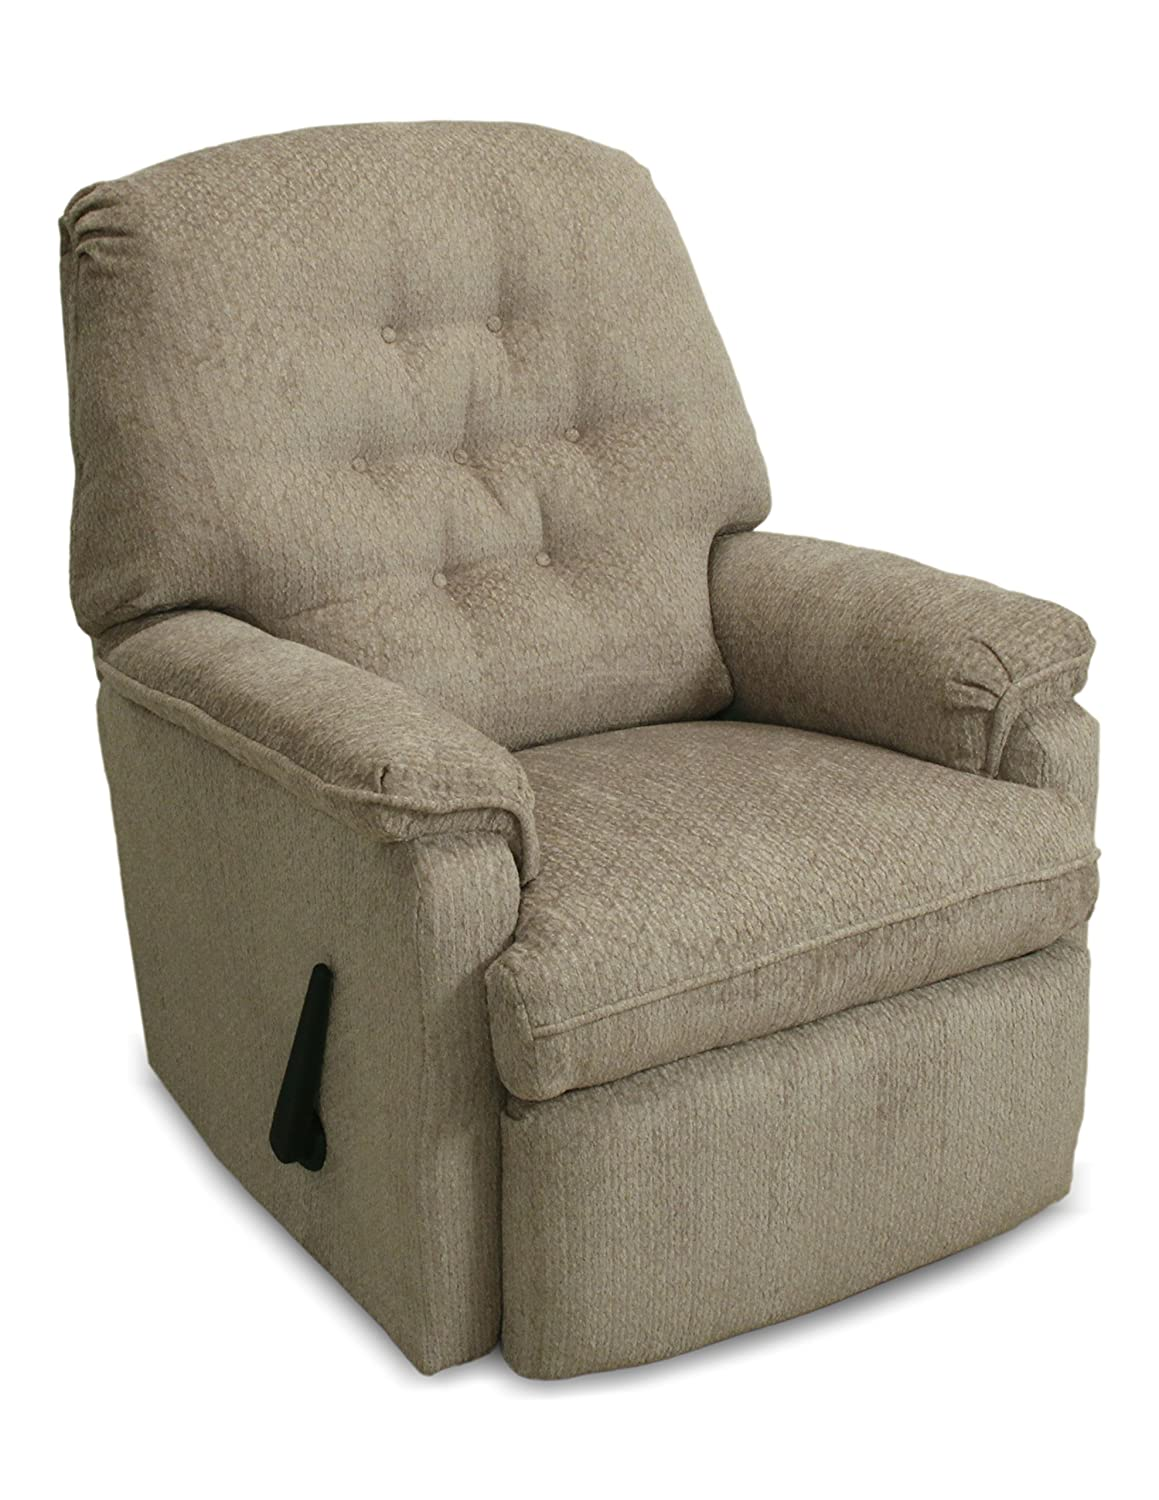 reviews brandan small dual rocker finding best roundhill oversize leather bonded furniture the from chair recliner